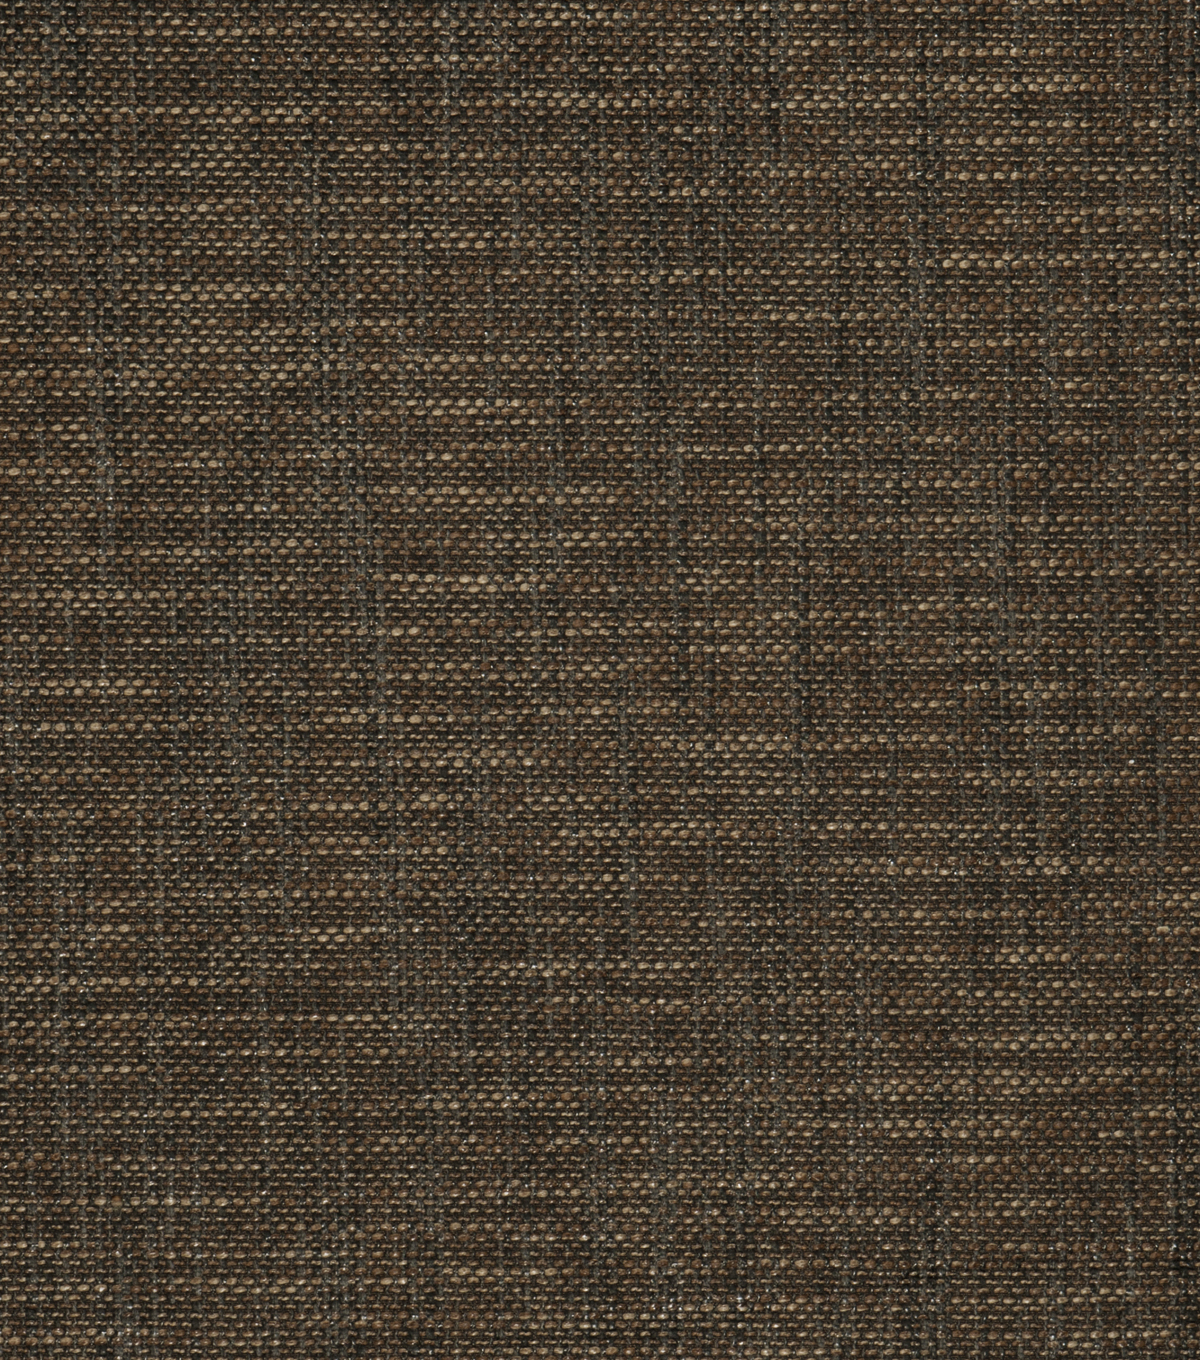 Home Decor 8x8 Fabric Swatch-Eaton Square Countdown Pecan